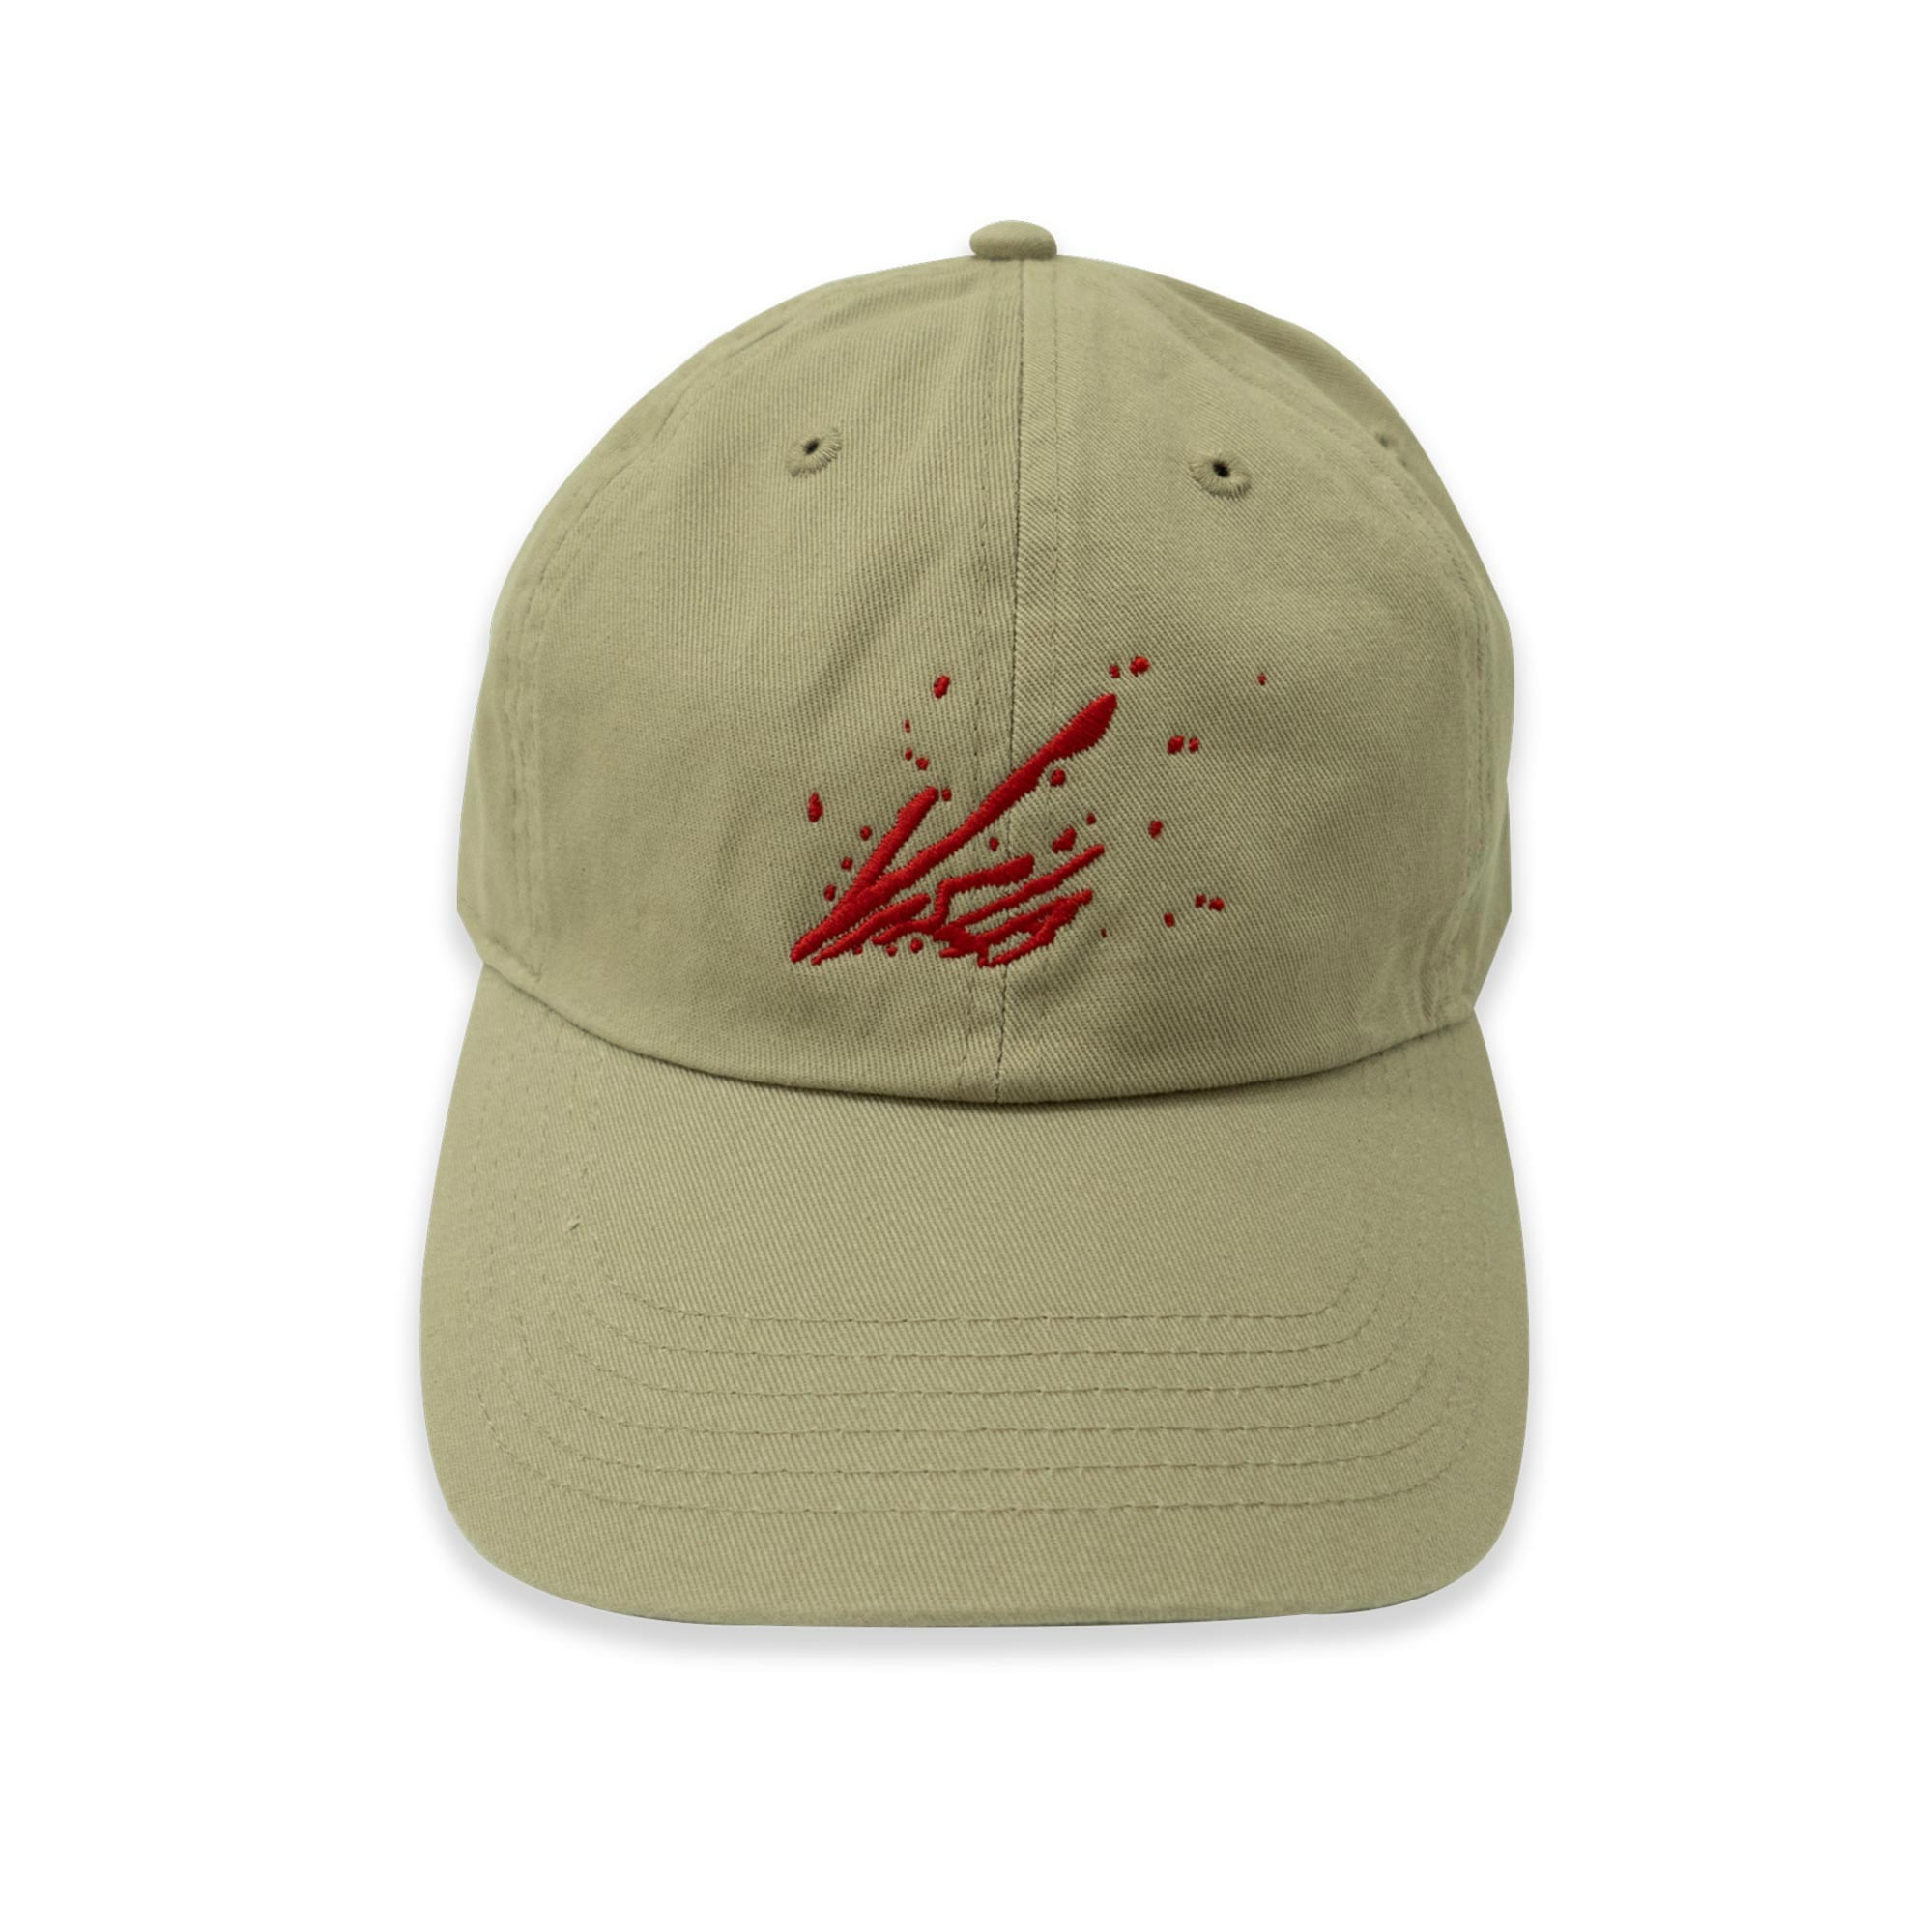 DEATH BLOW BALL CAP - BEIGE